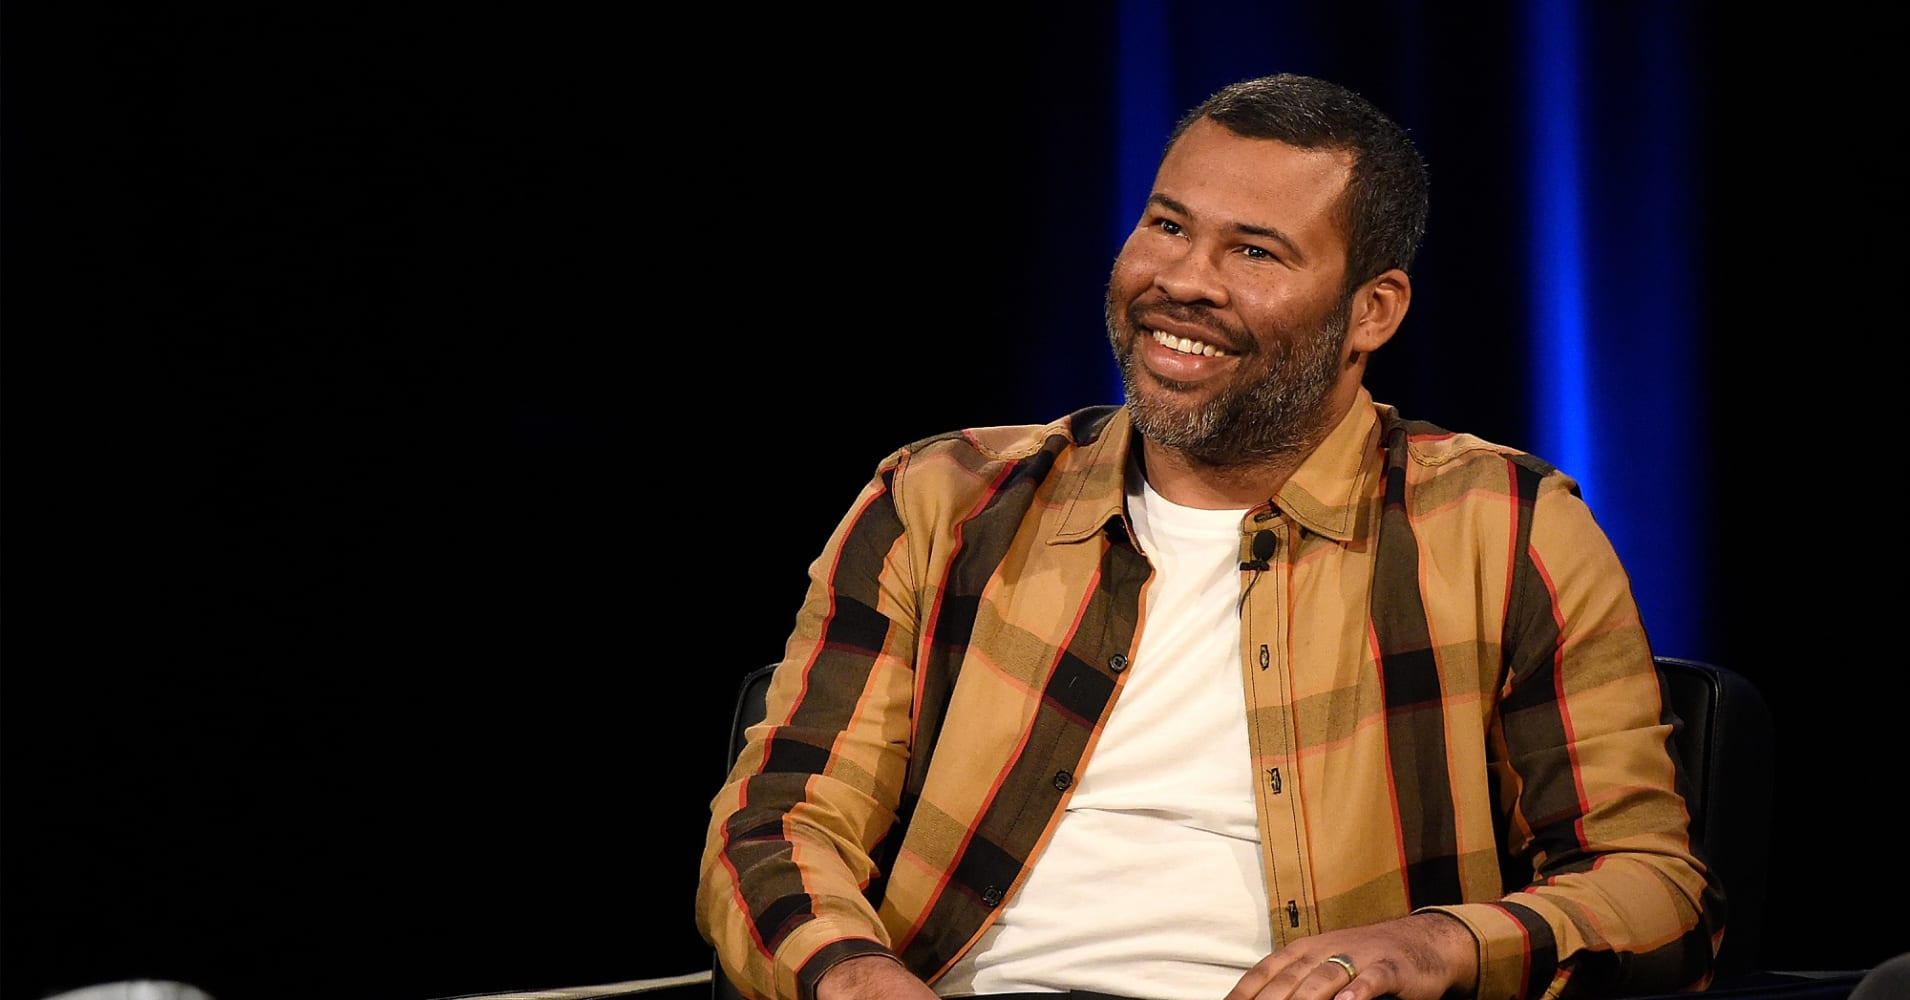 Jordan Peele wins Oscar for adapted screenplay